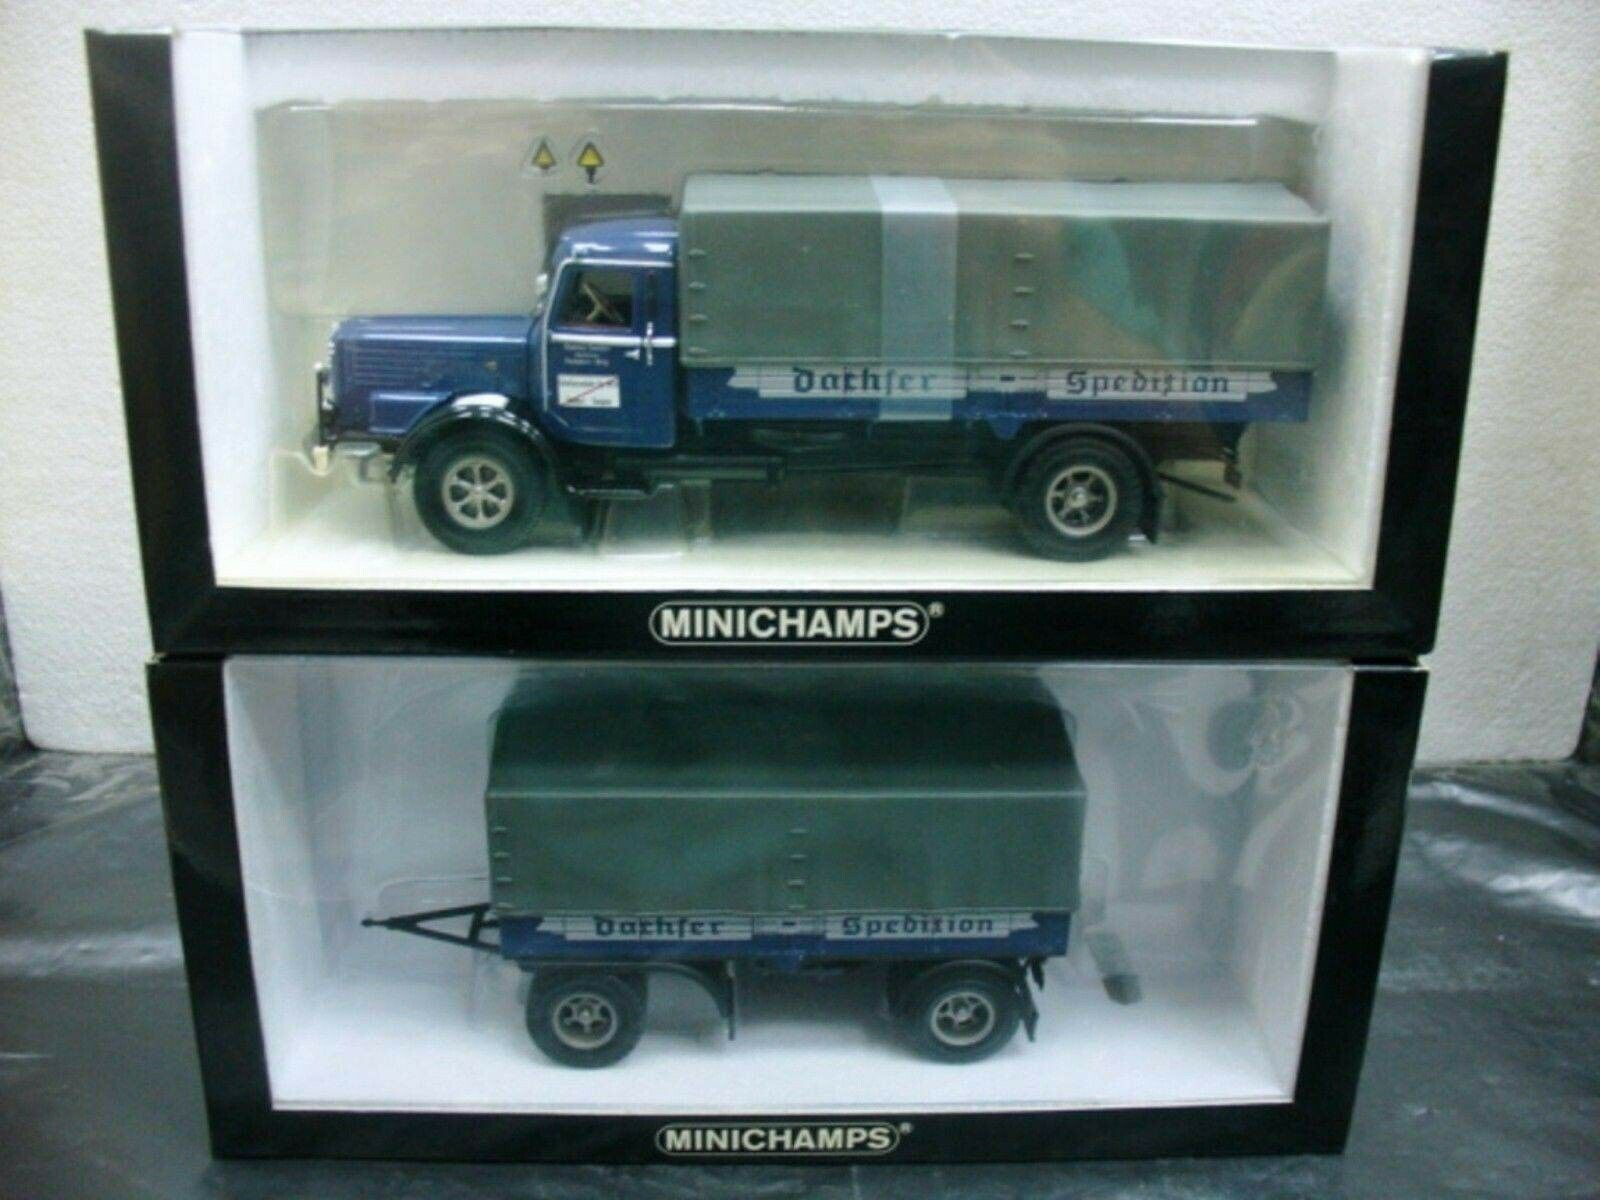 WOW EXTREMELY RARE Bussing Büssing 8000 S + Trailer Set Dachser 1 43 Minichamps